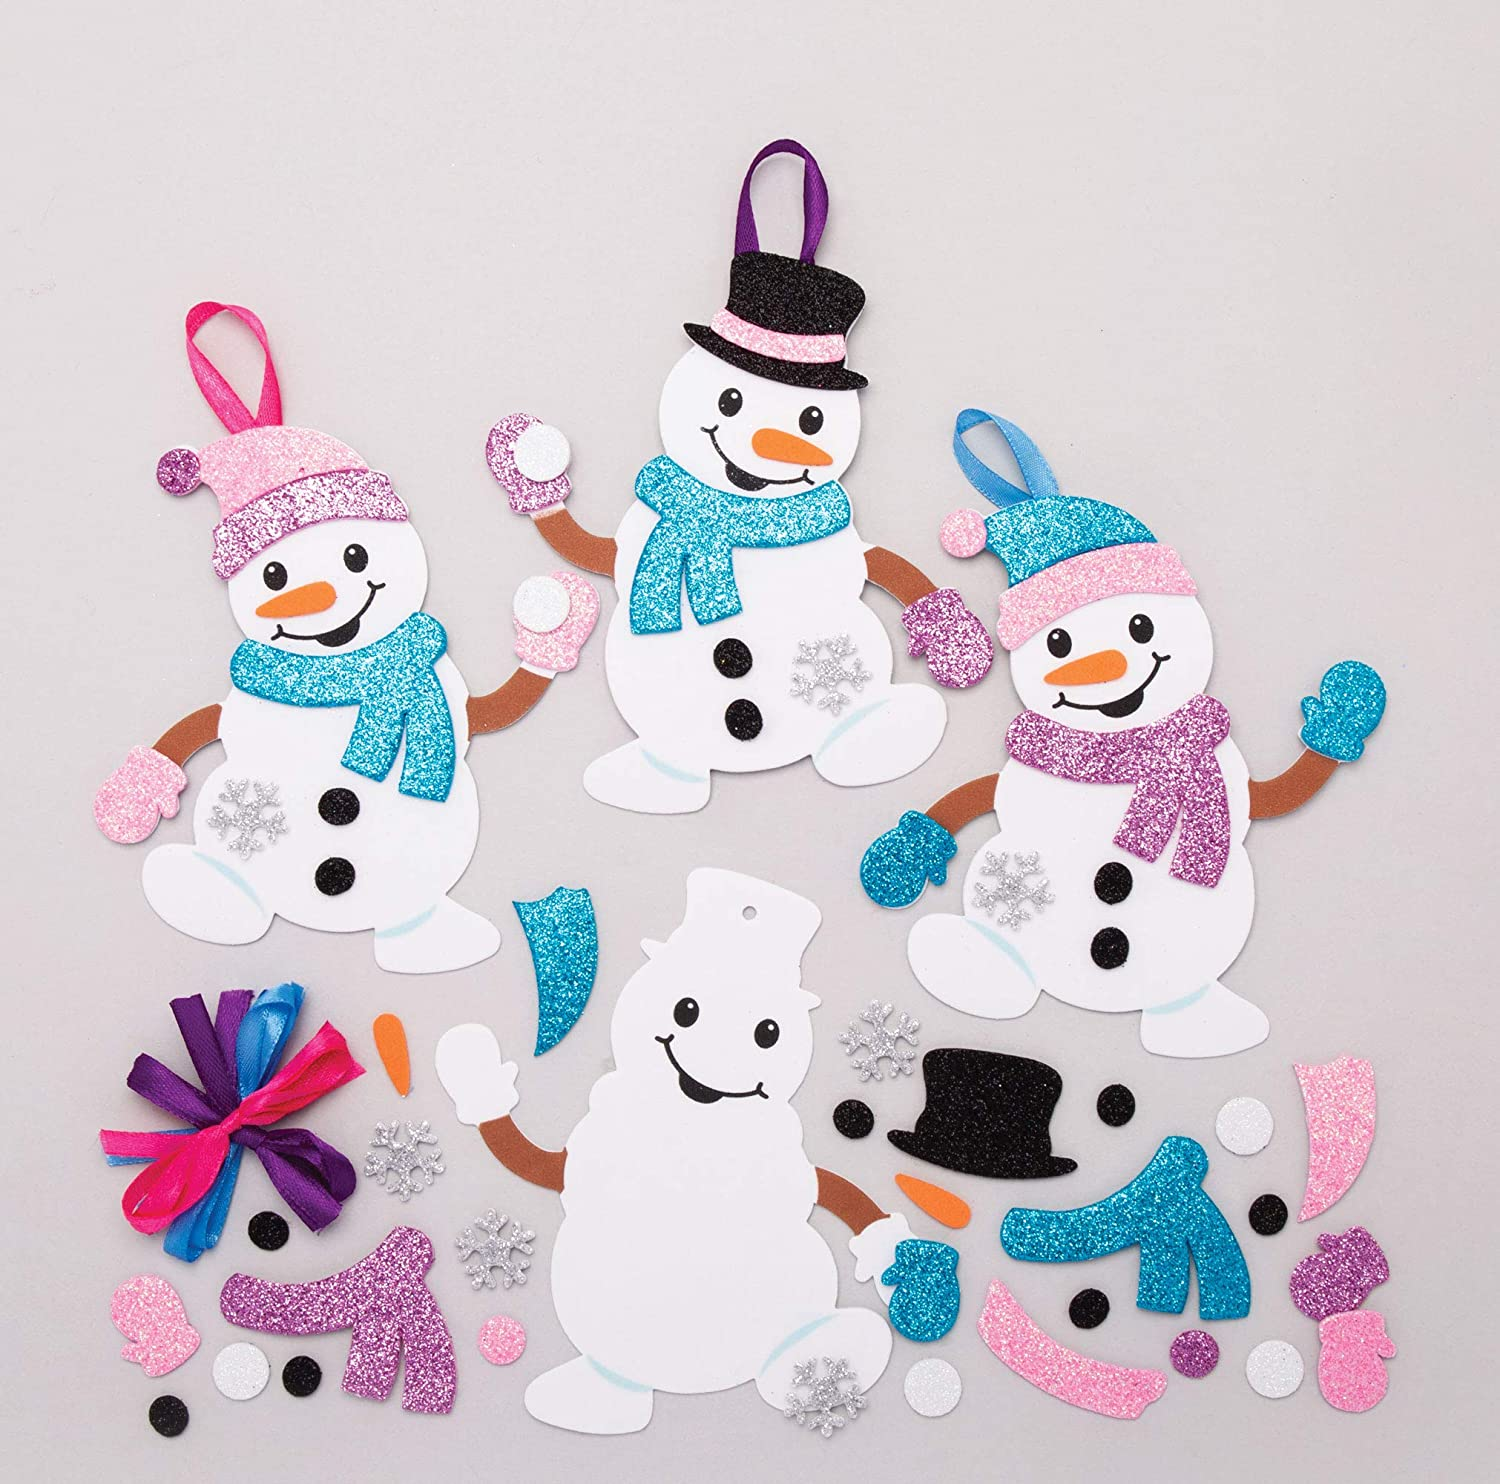 Baker Ross At160 Snowman Mix Match Decoration Kits Pack Of 6 Christmas Arts And Crafts Assorted Amazon Co Uk Business Industry Science